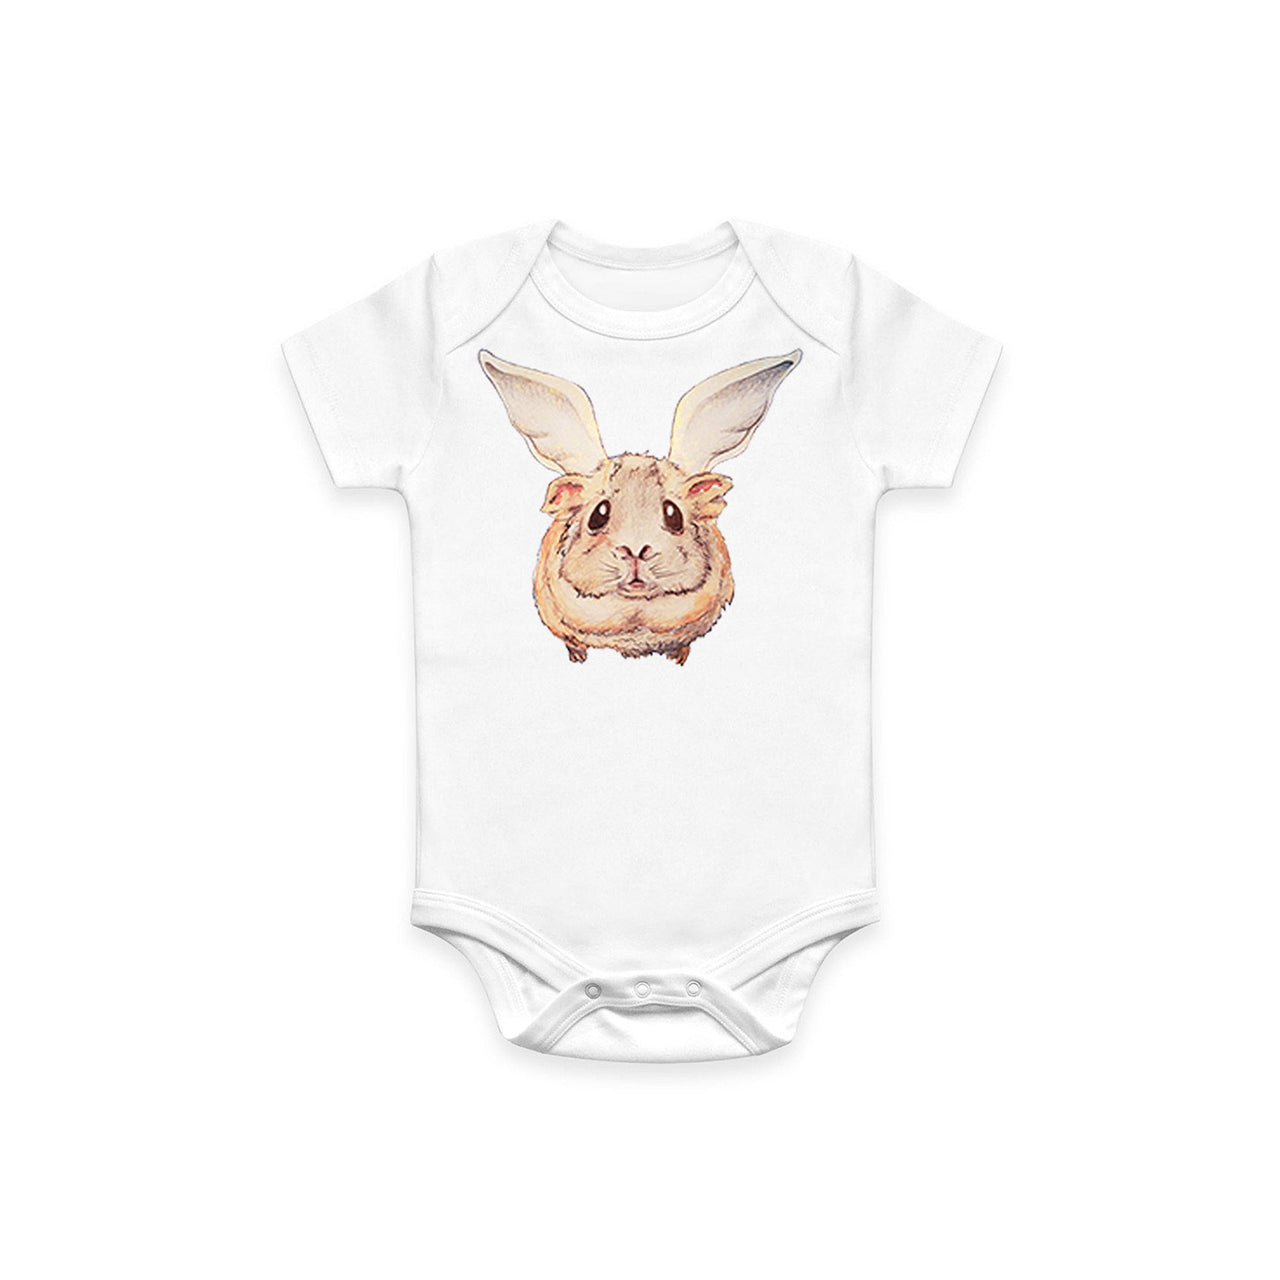 Beyond Organic When Guinea Pigs Fly Baby Bums Bodysuit